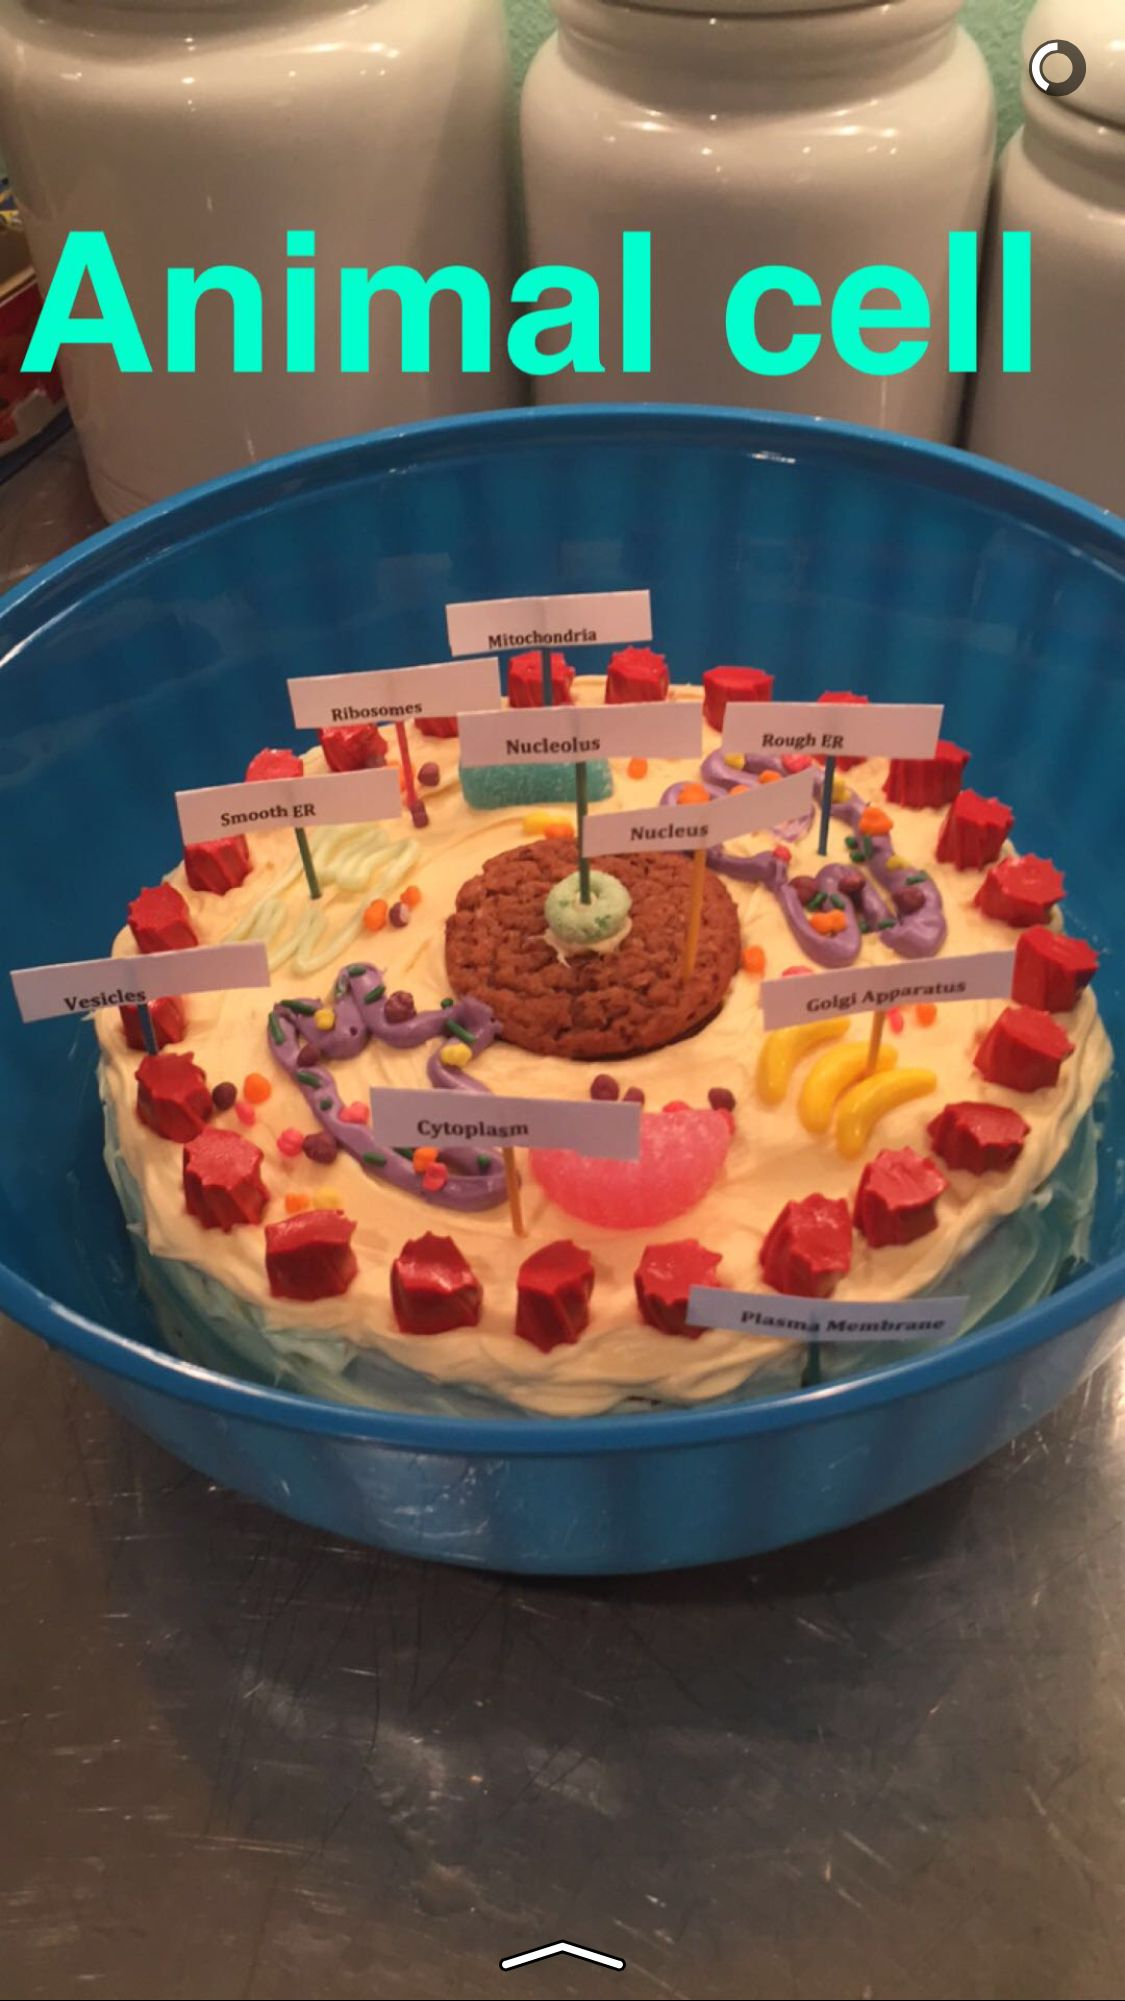 Edible Animal Cell Project Made By My High School Student Organelles Cake Plant And Model Diagram More